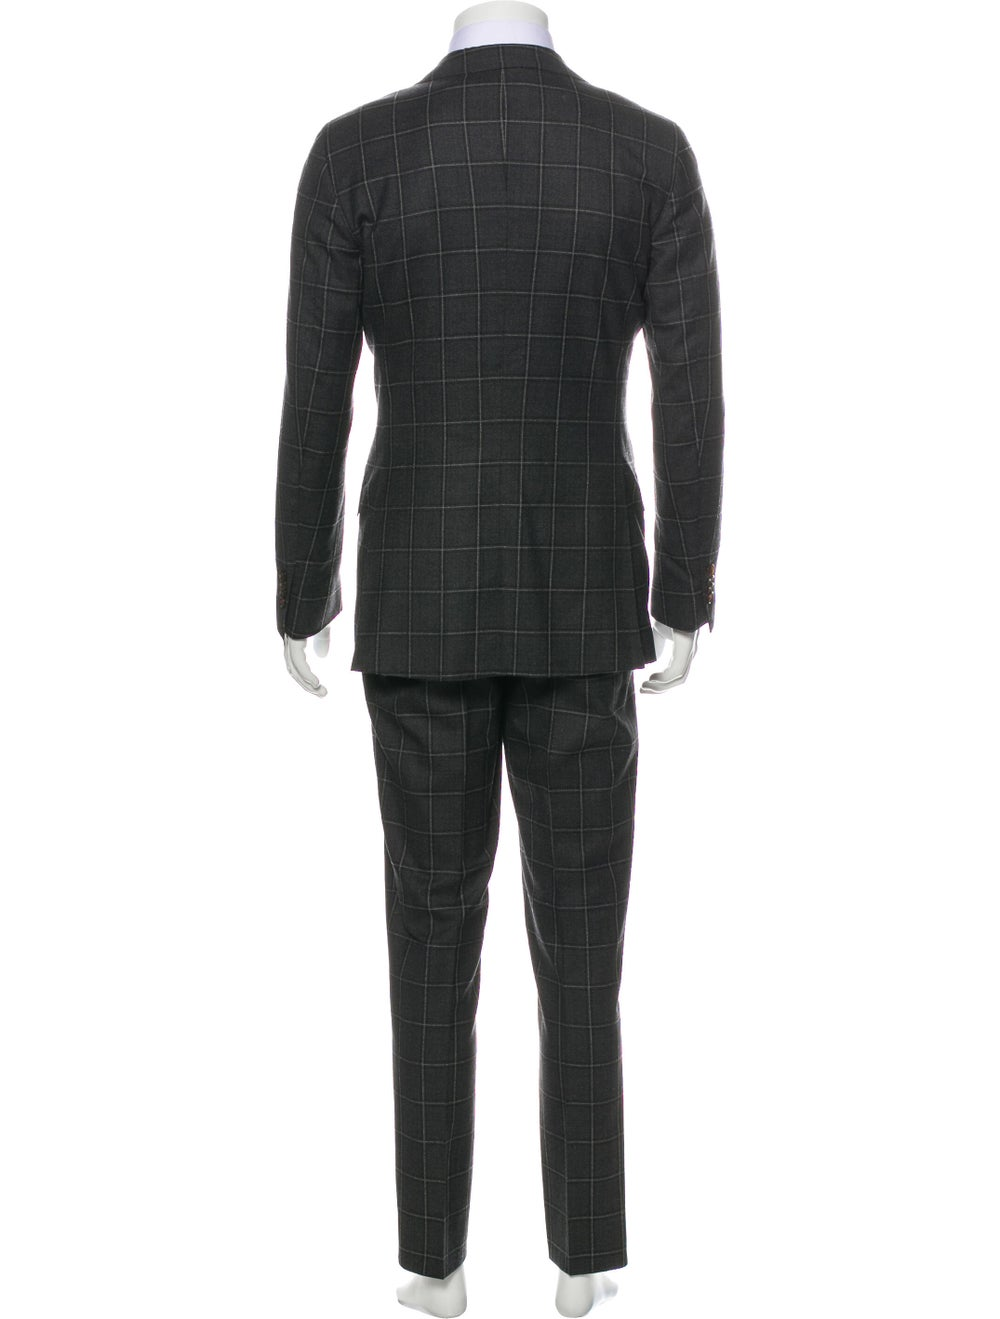 Suitsupply Plaid Two-Piece Suit grey - image 3